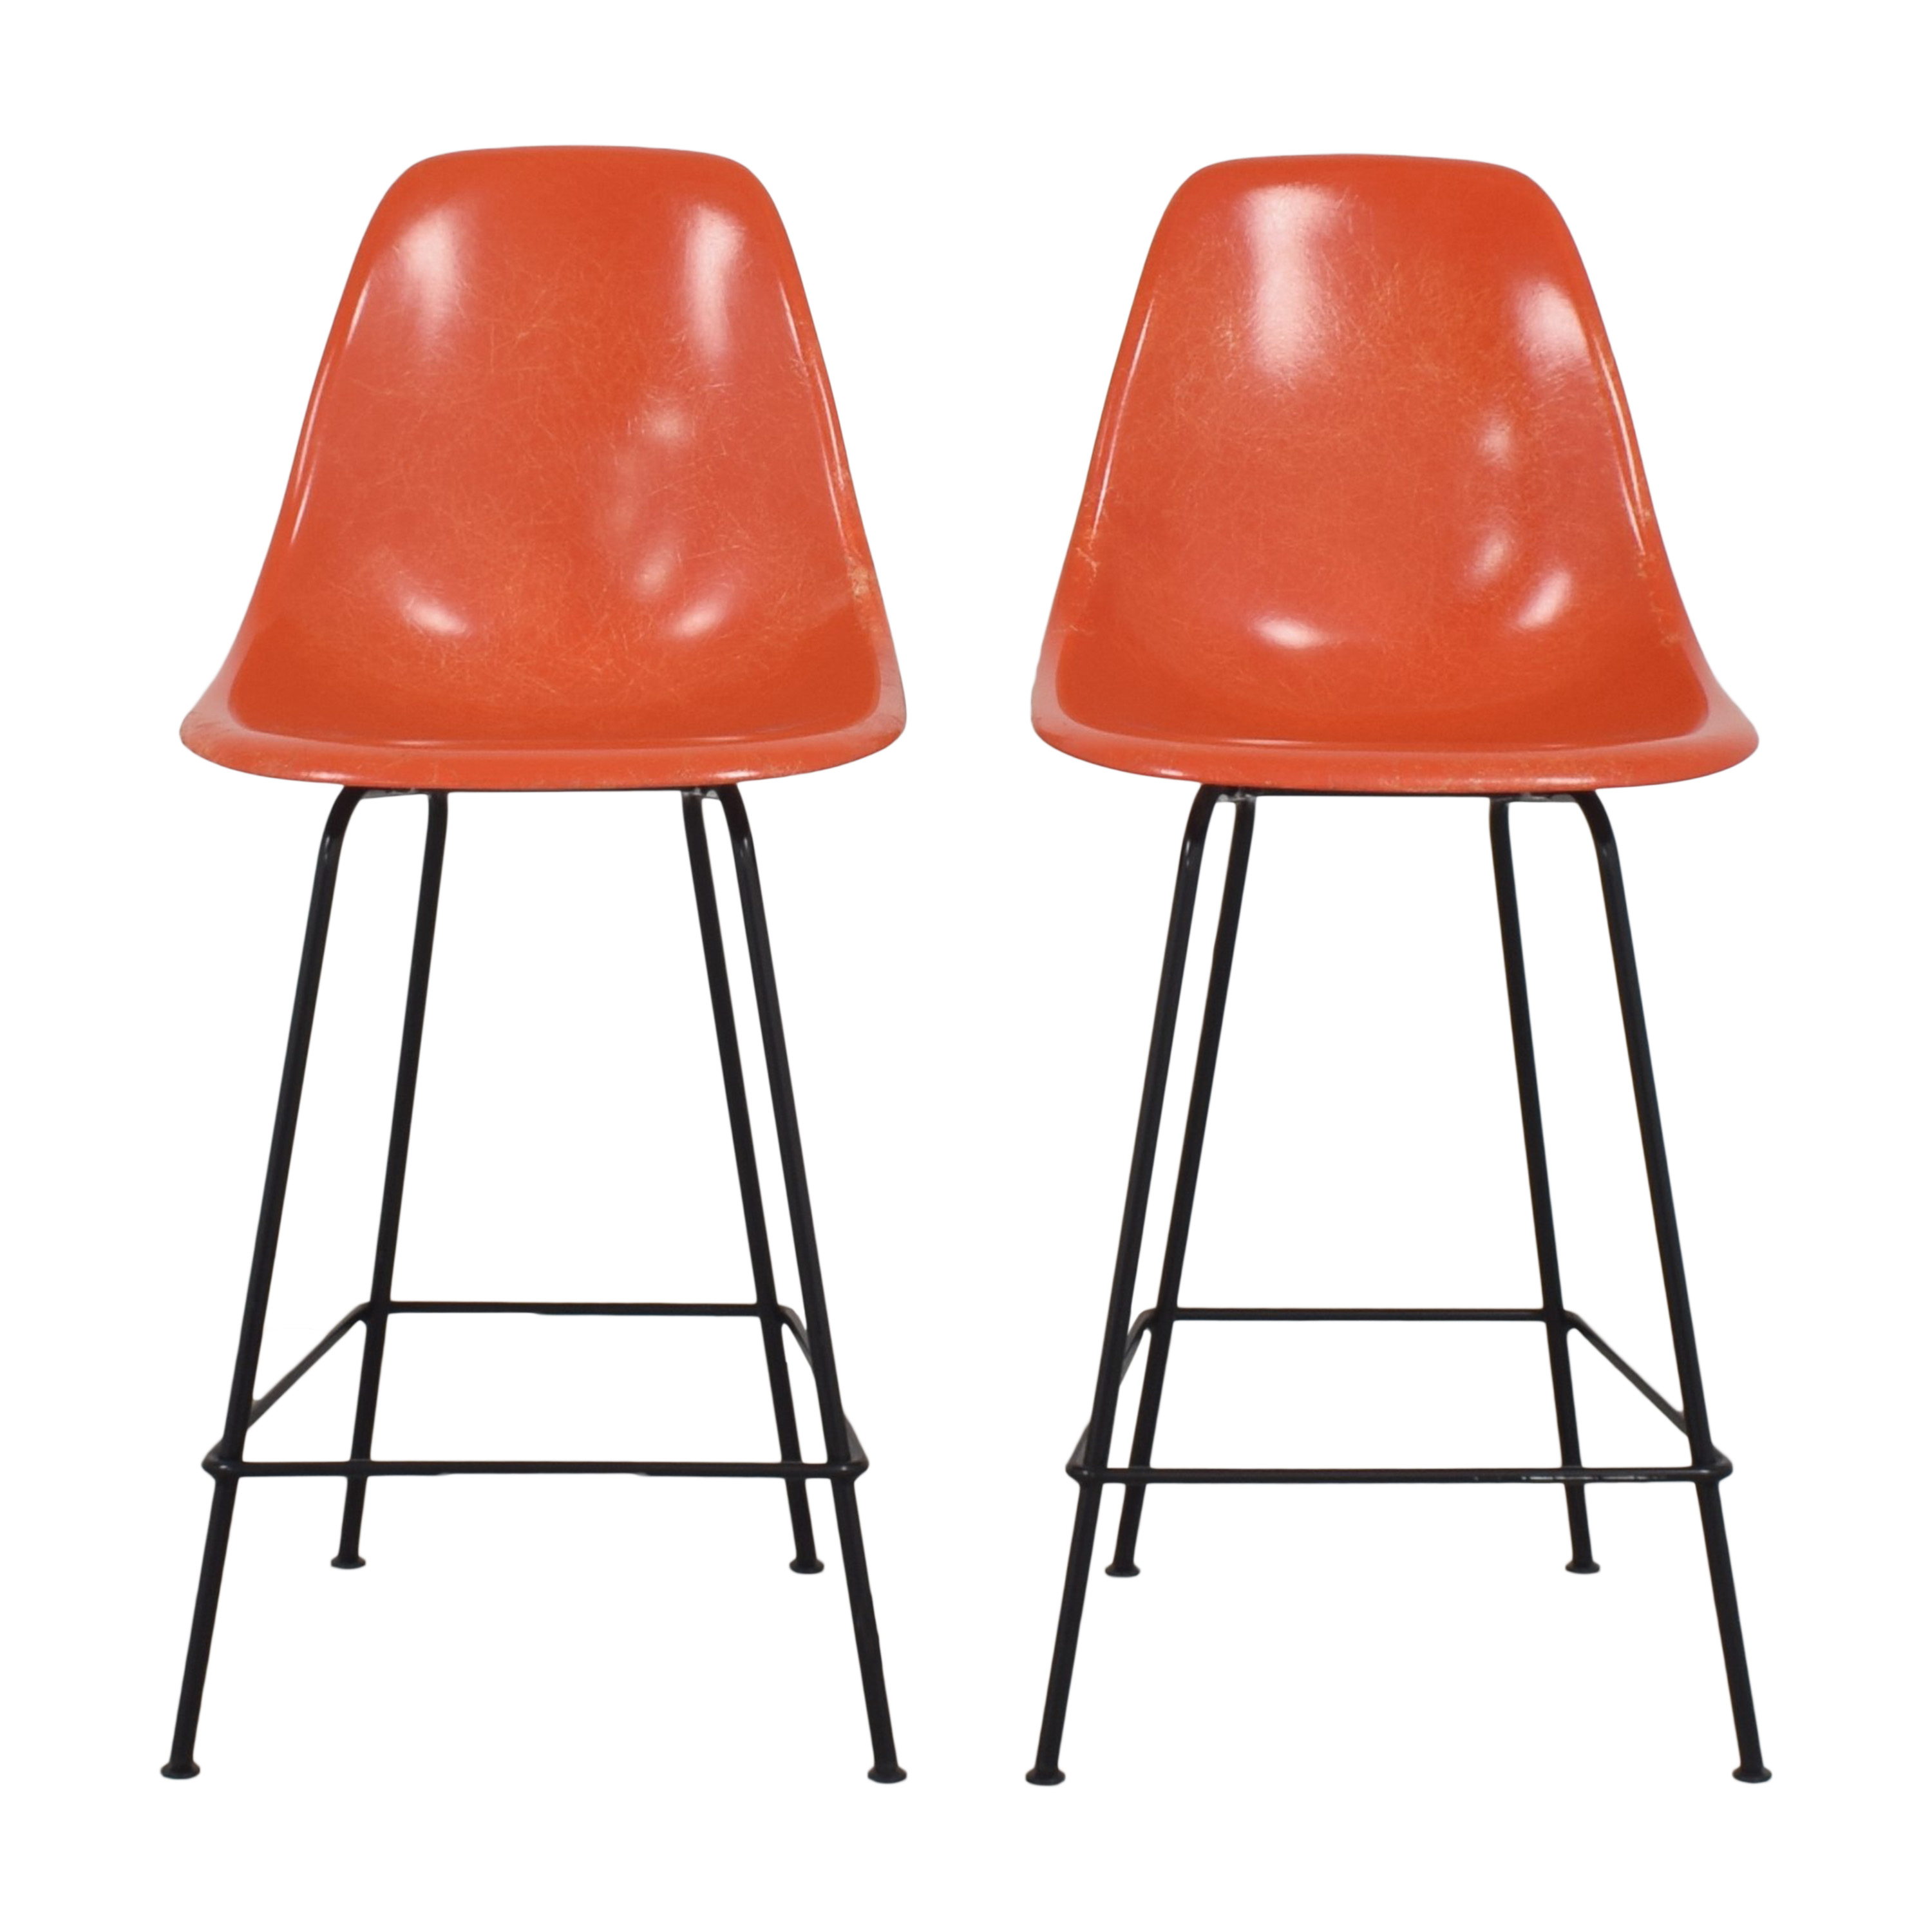 Herman Miller Herman Miller Eames Molded Counter Stools price